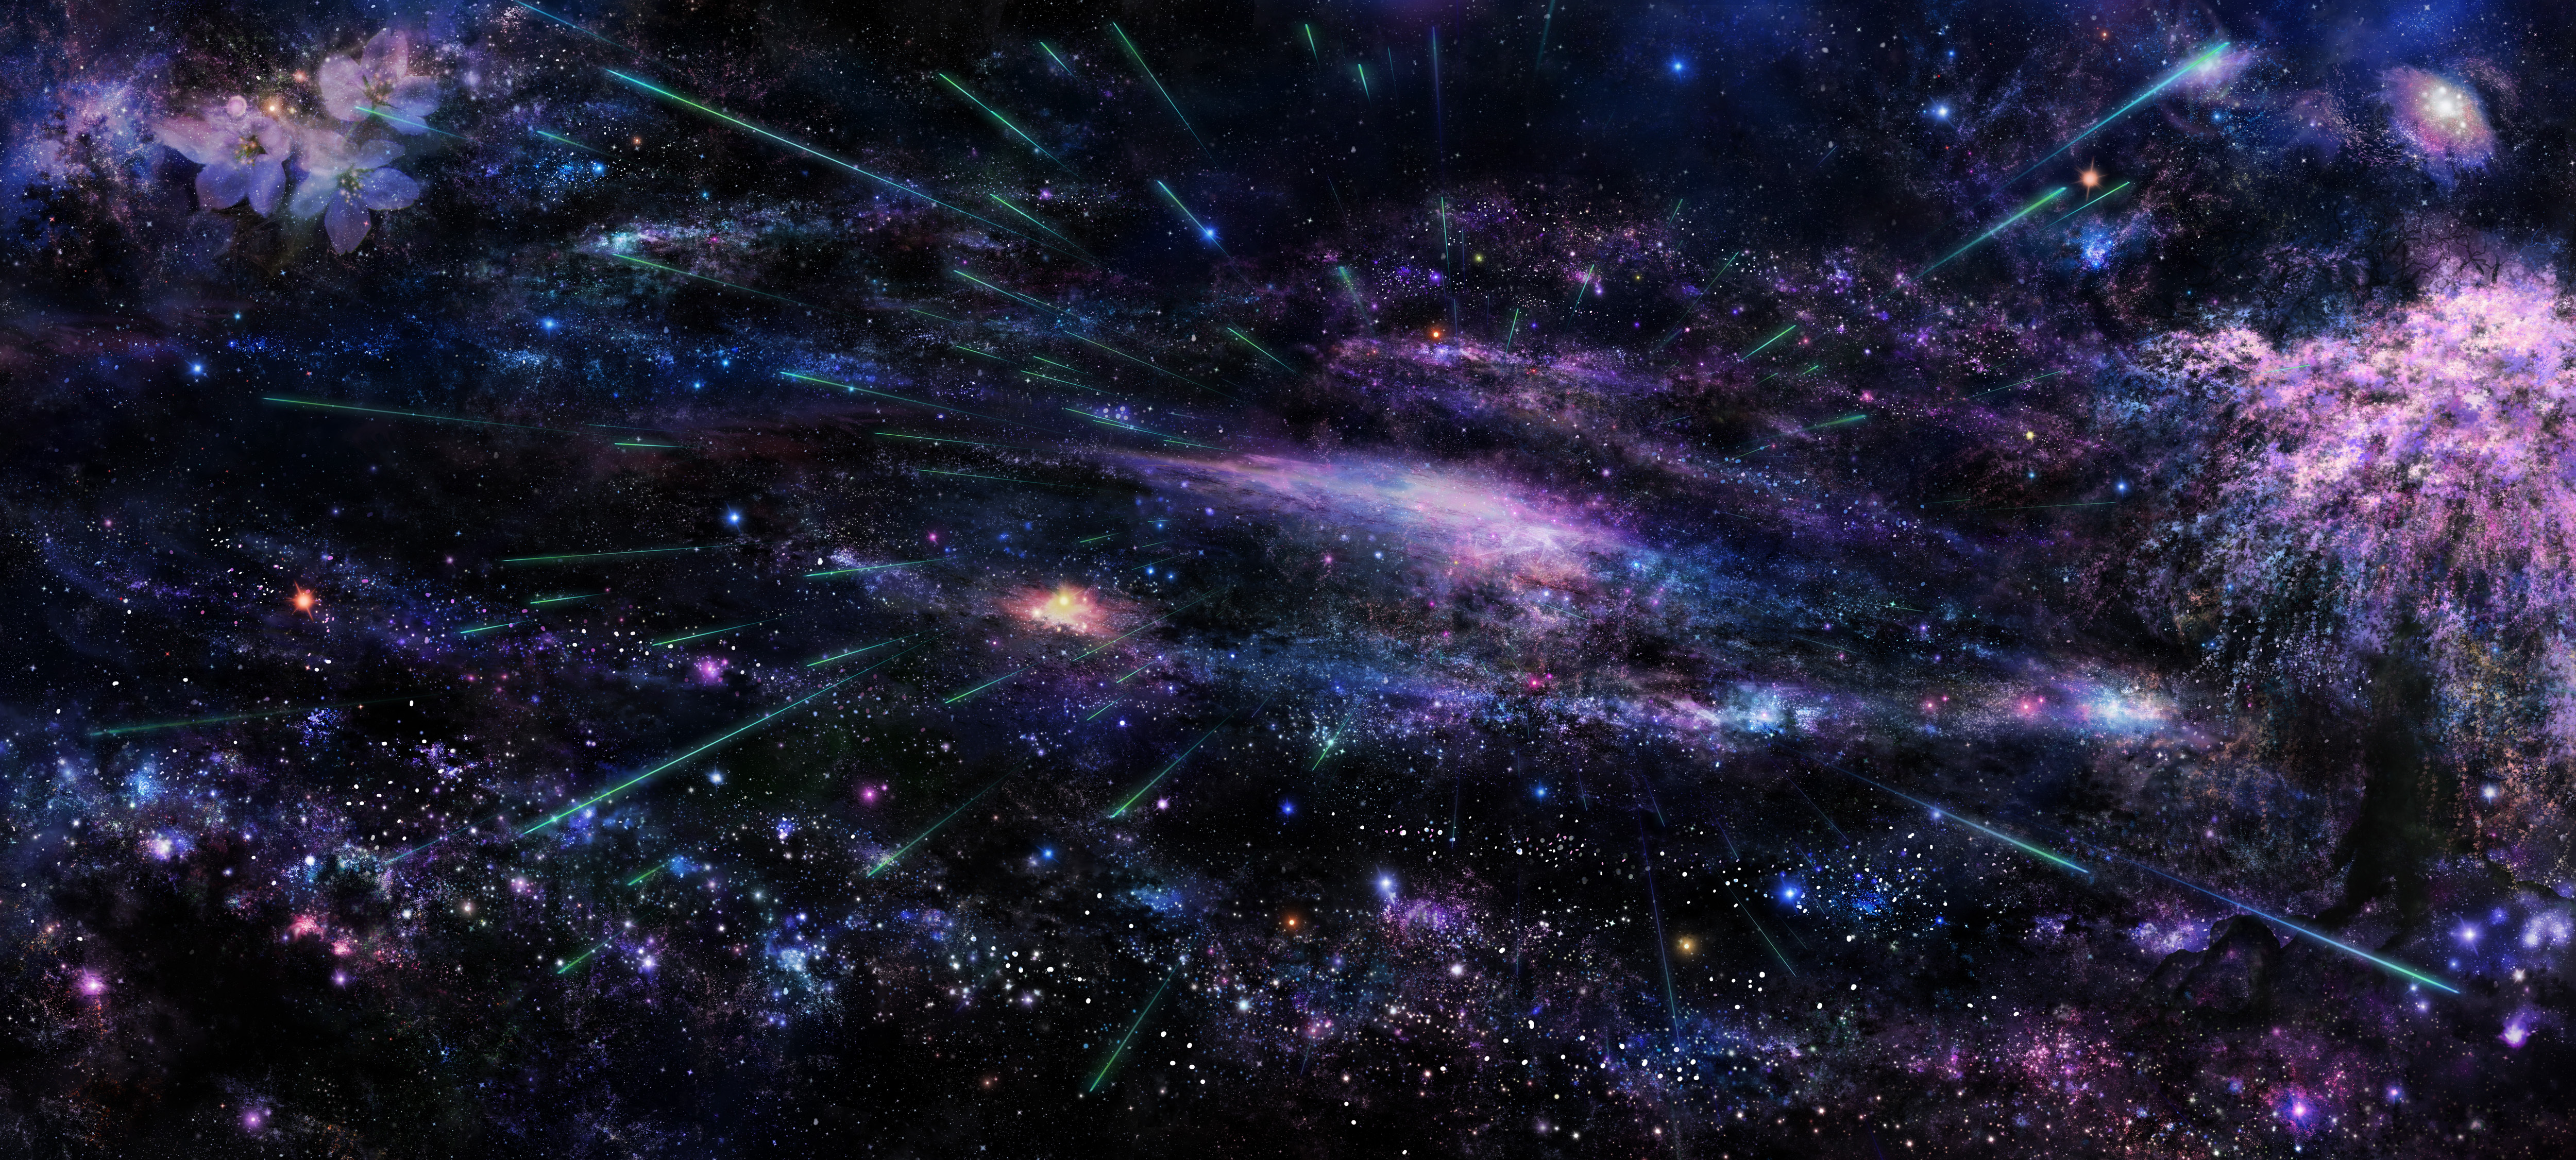 space 4k ultra hd wallpaper and background image | 5000x2252 | id:372225